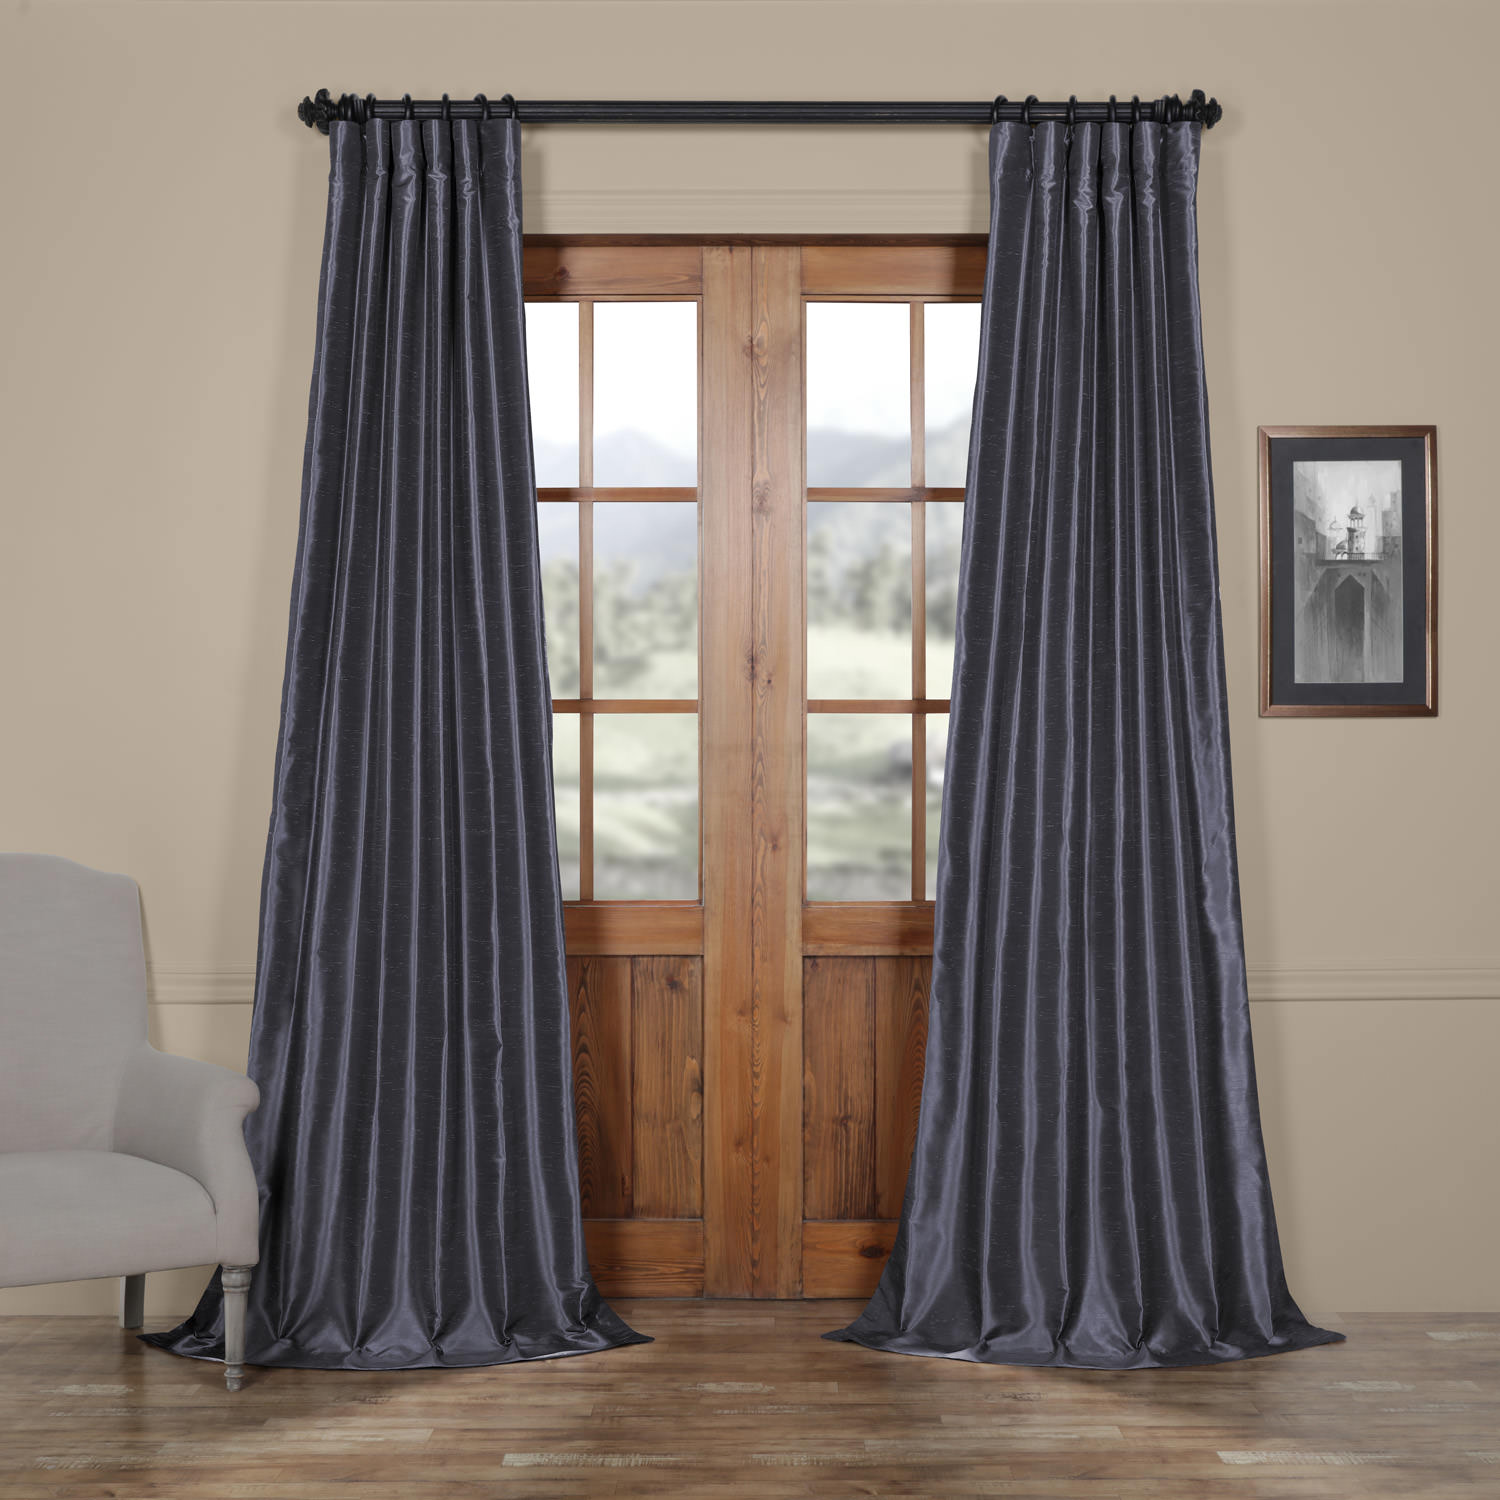 Loyalty Blue Vintage Textured Faux Dupioni Silk Curtain